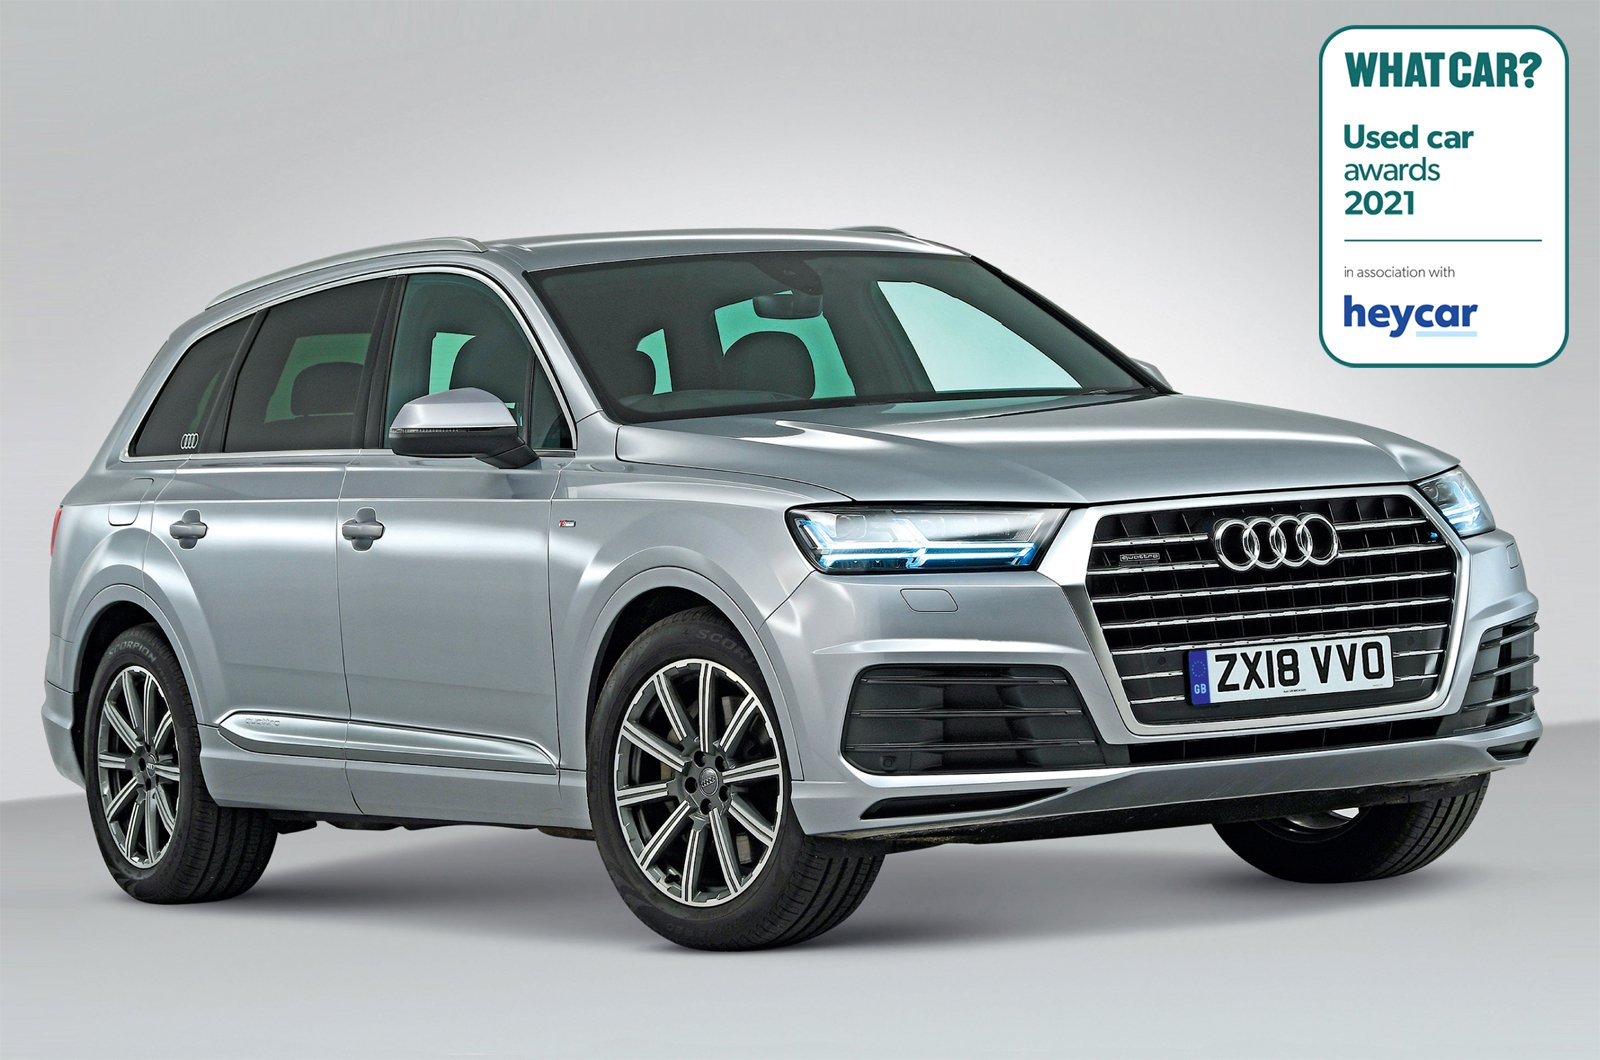 Used Car Awards 2021 - Audi Q7